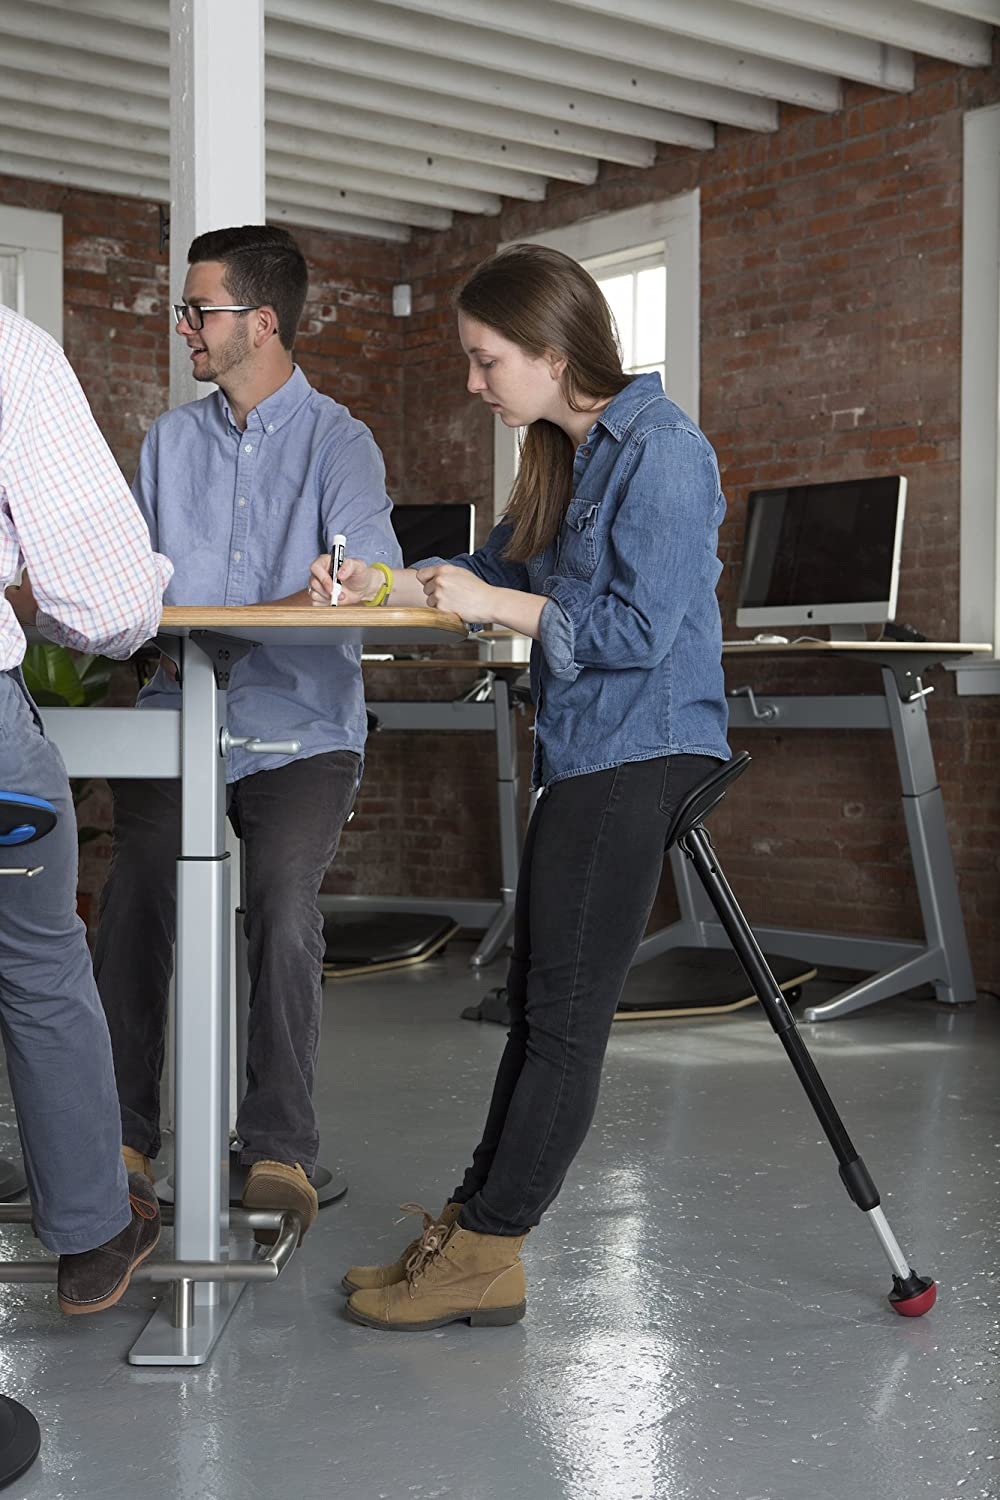 The 5 best active seating solution for your office